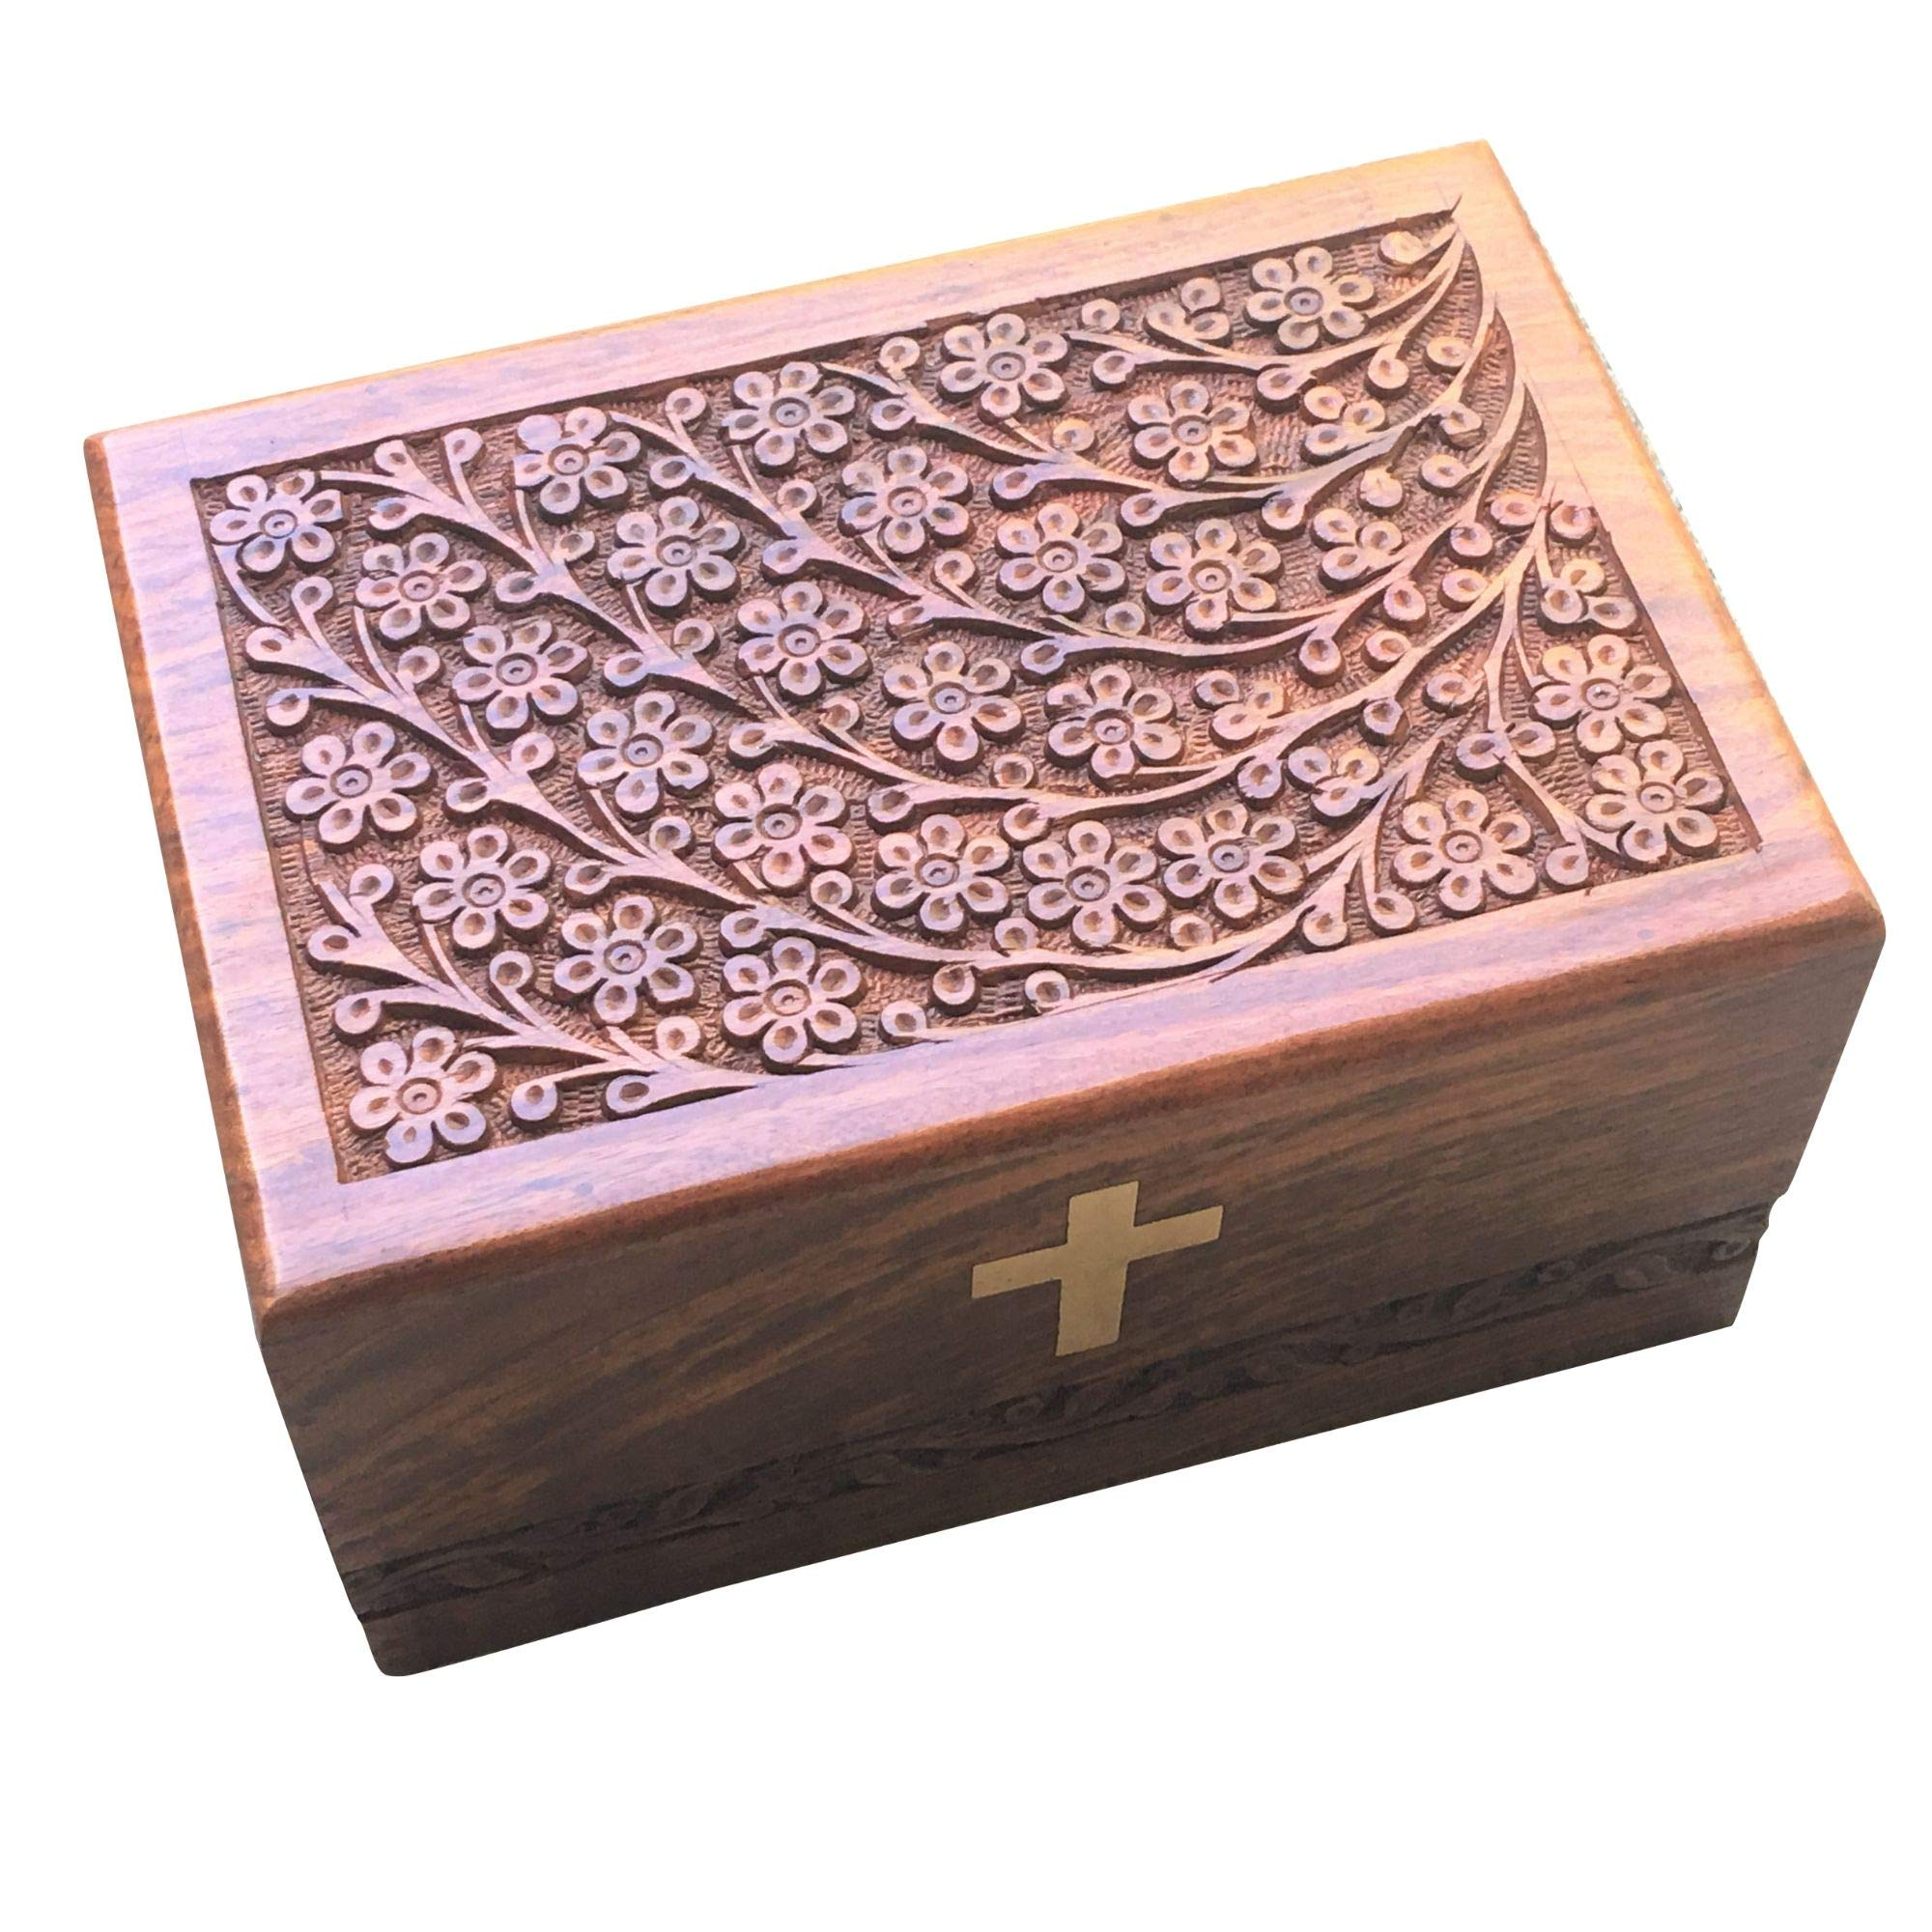 iBambooMart URN Box Large Tree of Life Rosewood Wooden Cremation Handmade Handcrafted Wood Box - 9''x6.5''x4.5'' for Ashes, Burial Adult, Pet, Dog, Cat, Elegant Design by iBambooMart